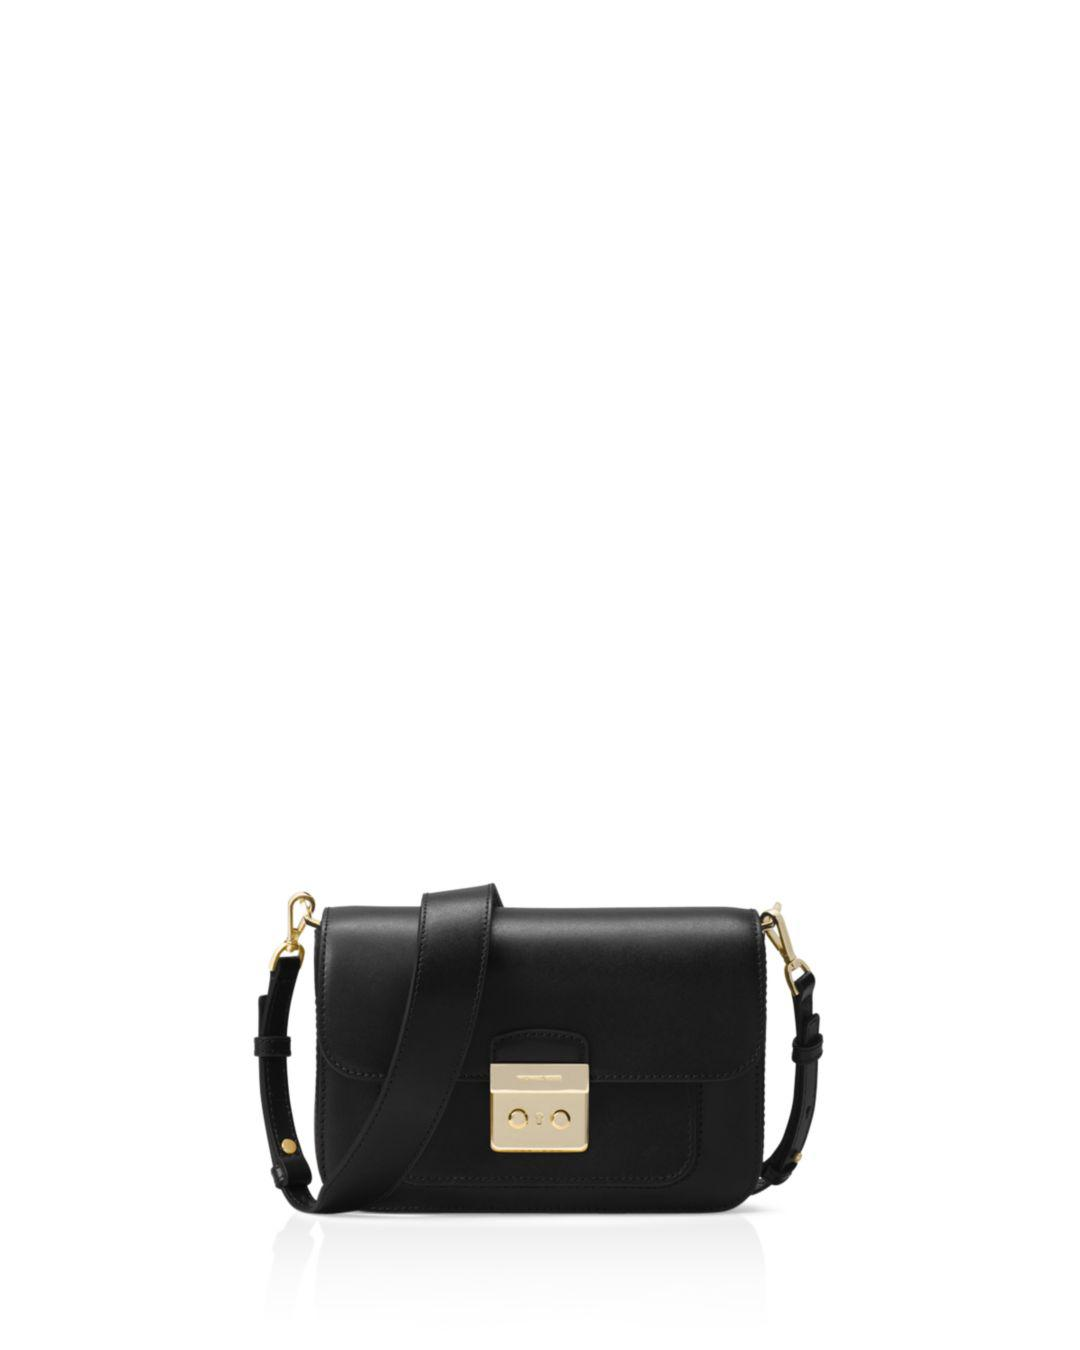 10d99cdfd07c5 Lyst - Michael Kors Sloan Editor Leather Shoulder Bag in Black ...